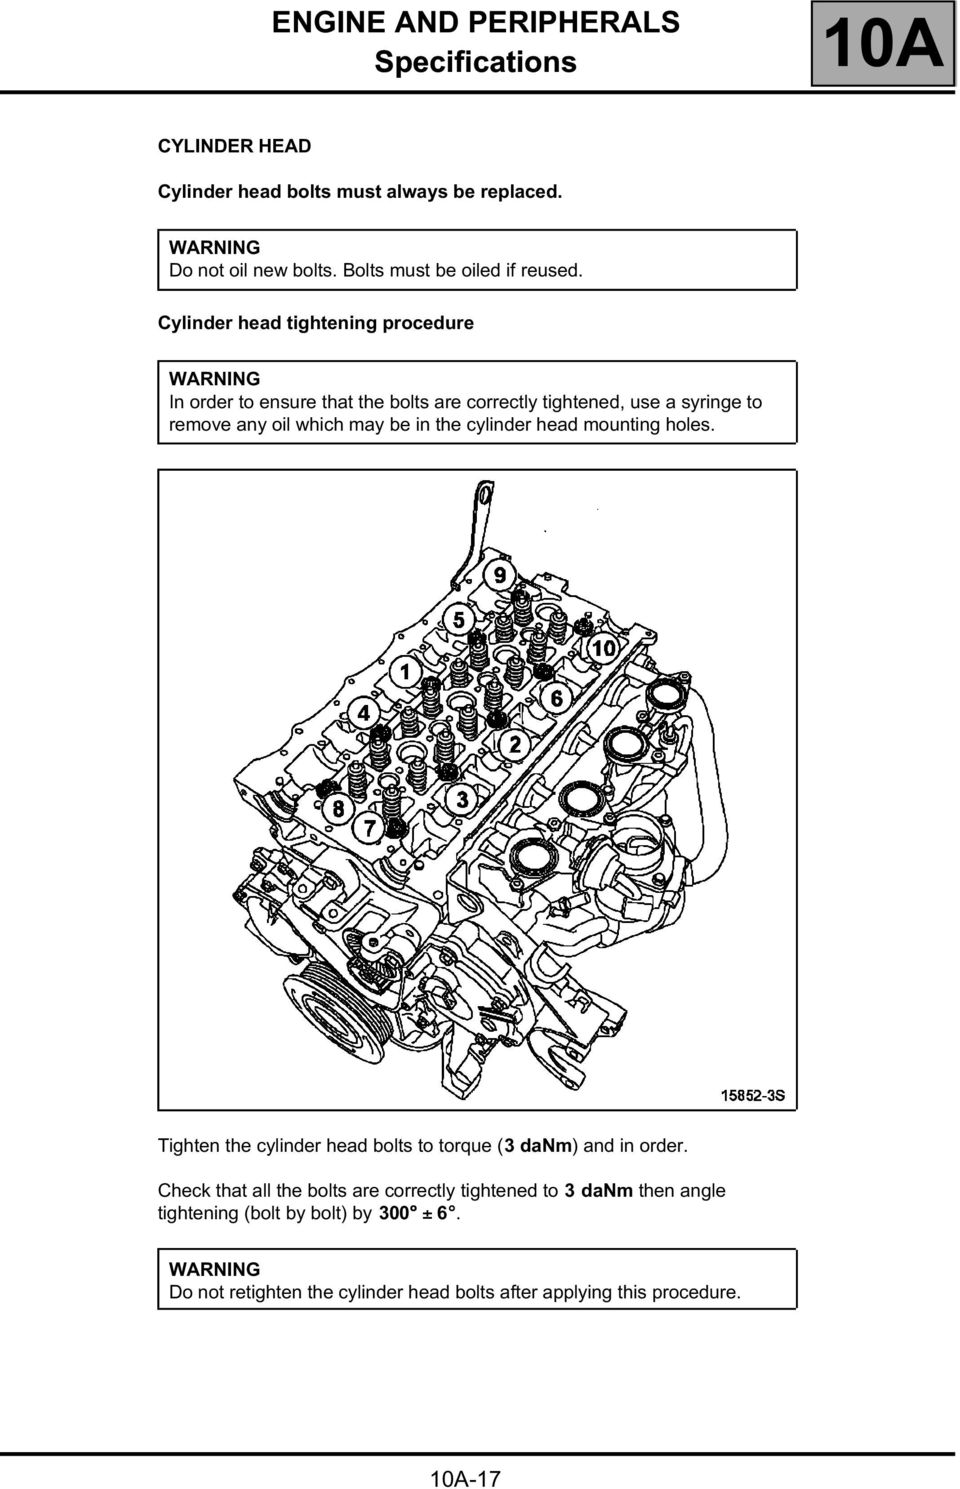 Workshop Repair Manual Pdf Audi Engine Diagram Torque Head Be In The Cylinder Mounting Holes Tighten Bolts To